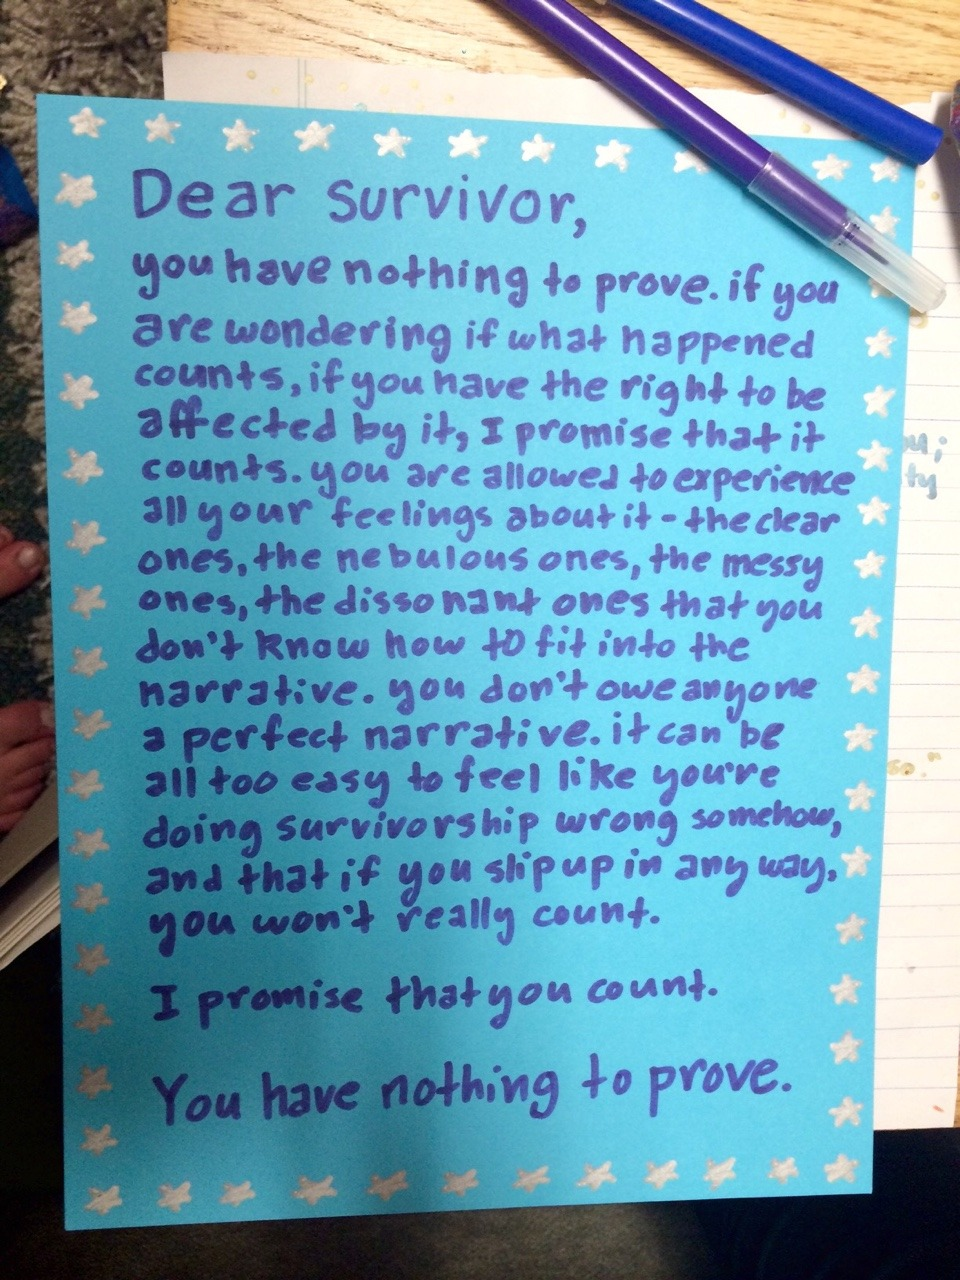 Dear Survivor,  you have nothing to prove. if you are wondering if what happened counts, if you have the right to be affected by it, I promise that it counts. you are allowed to experience all your feelings about it - the clear ones, the nebulous ones, the messy ones, the dissonant ones that you don't know hot to fit into the narrative. you don't owe anyone a perfect narrative. it can be all too easy to feel like you're doing survivorship wrong somehow, and that if you slip up in any way, it won't really count.  I promise that you count.  You have nothing to prove.